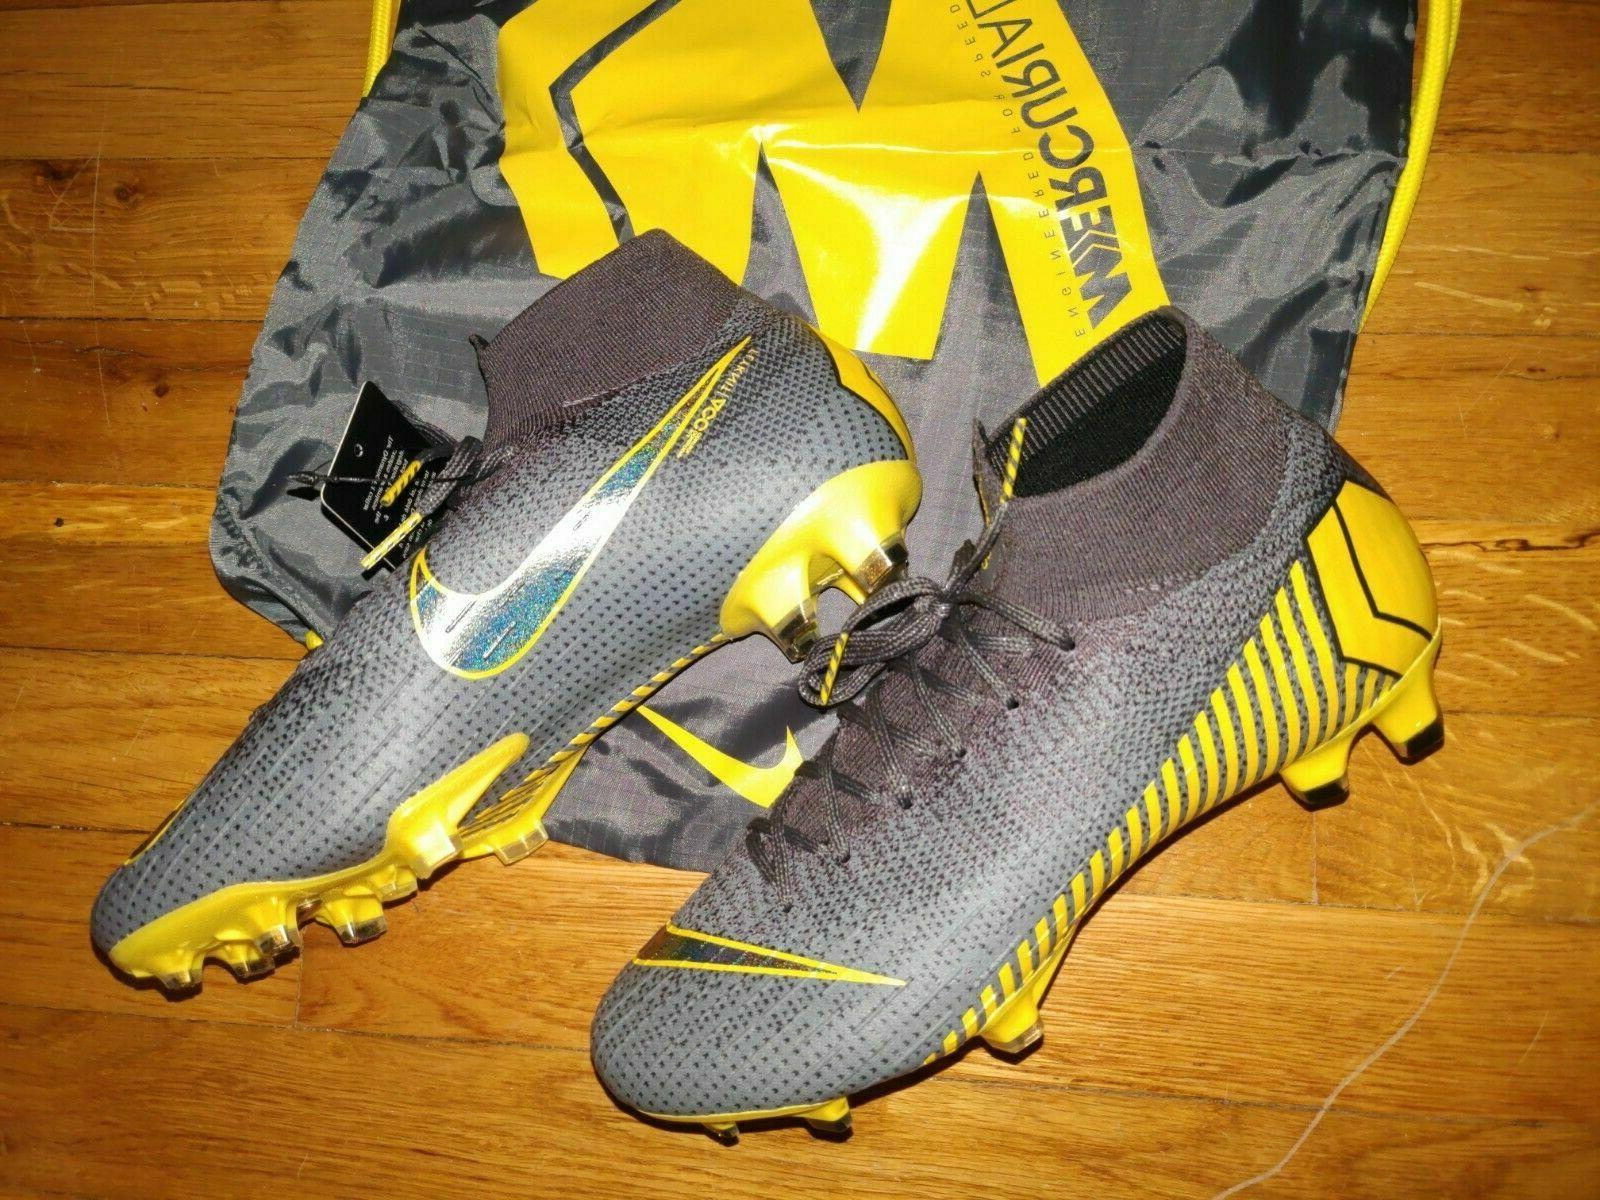 mercurial superfly vi fg soccer cleats